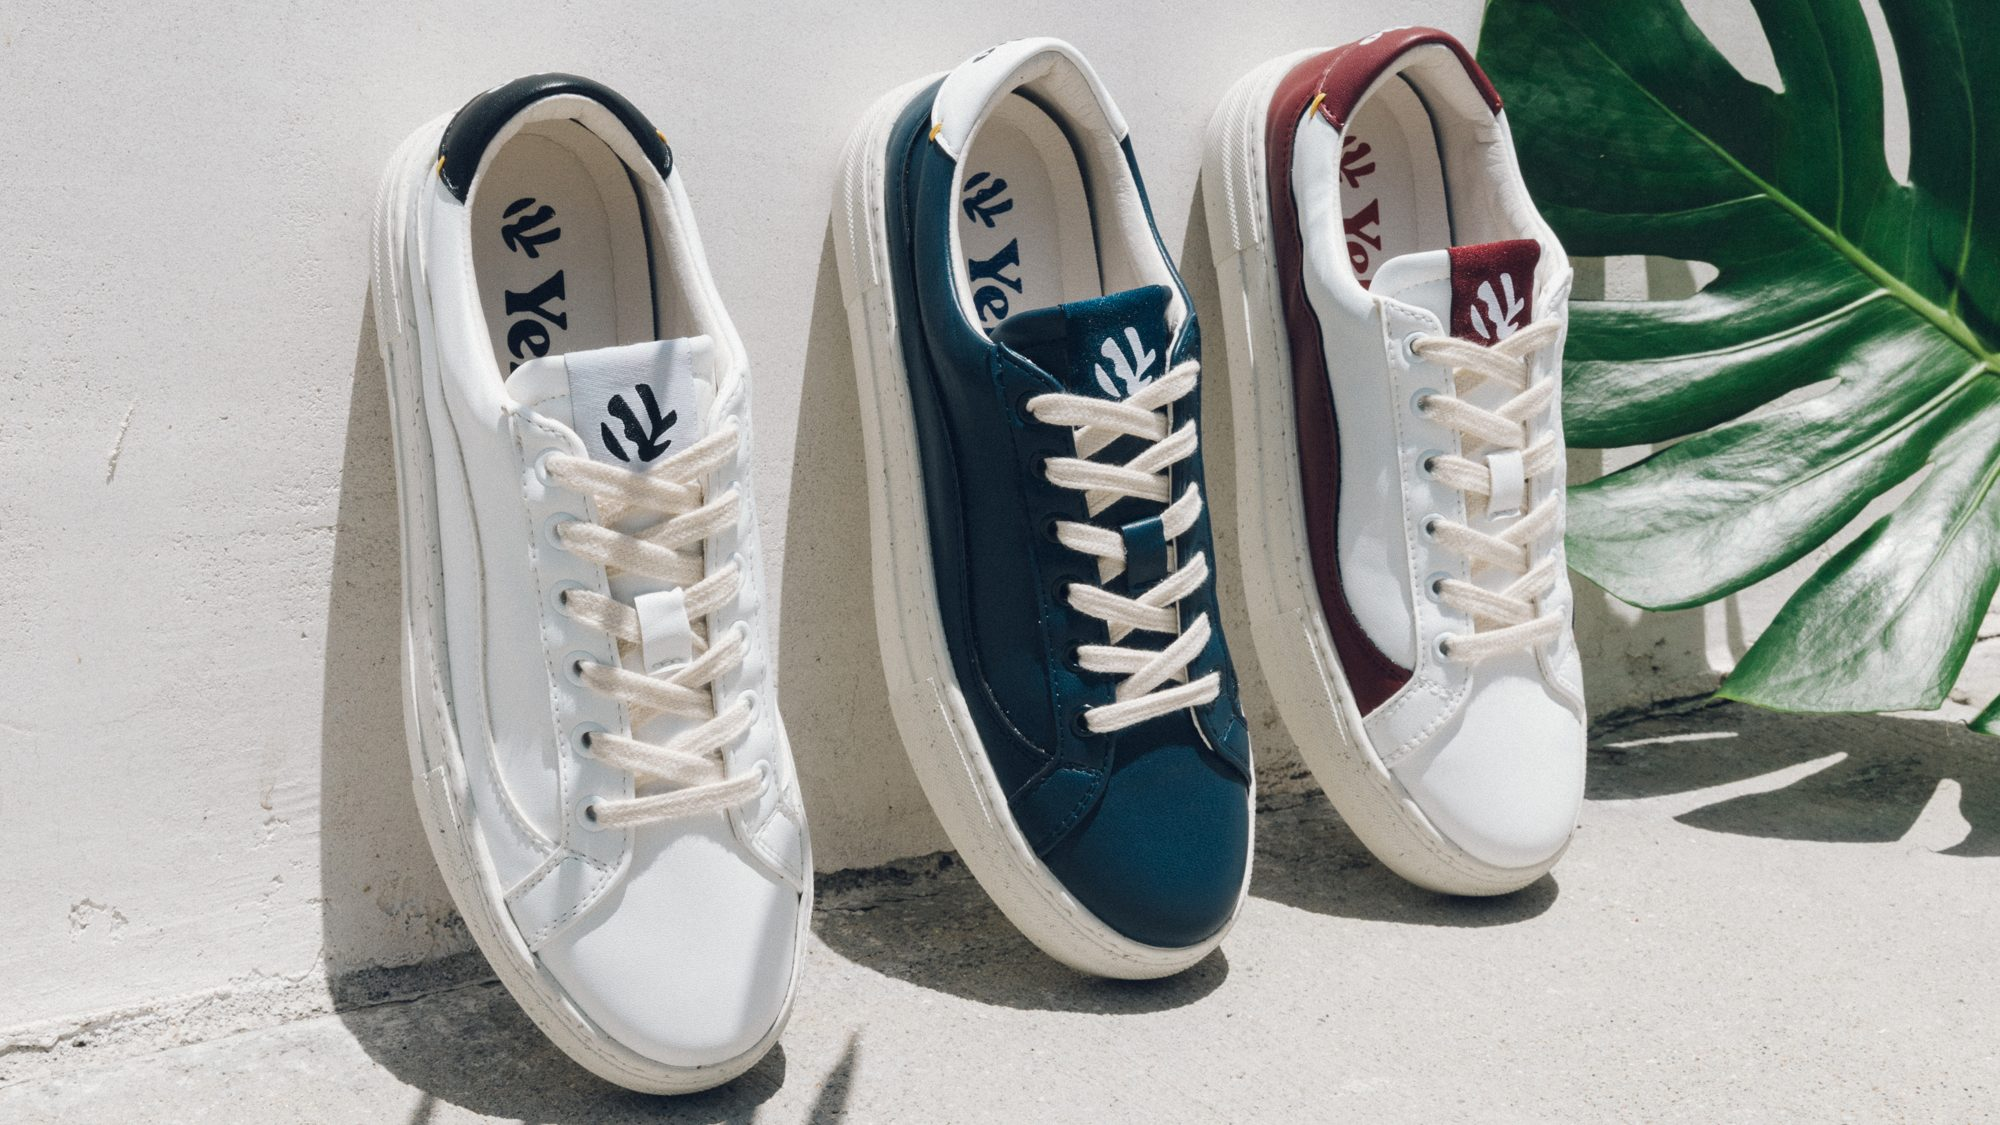 Yebo Sneakers Lifestyle Pictures